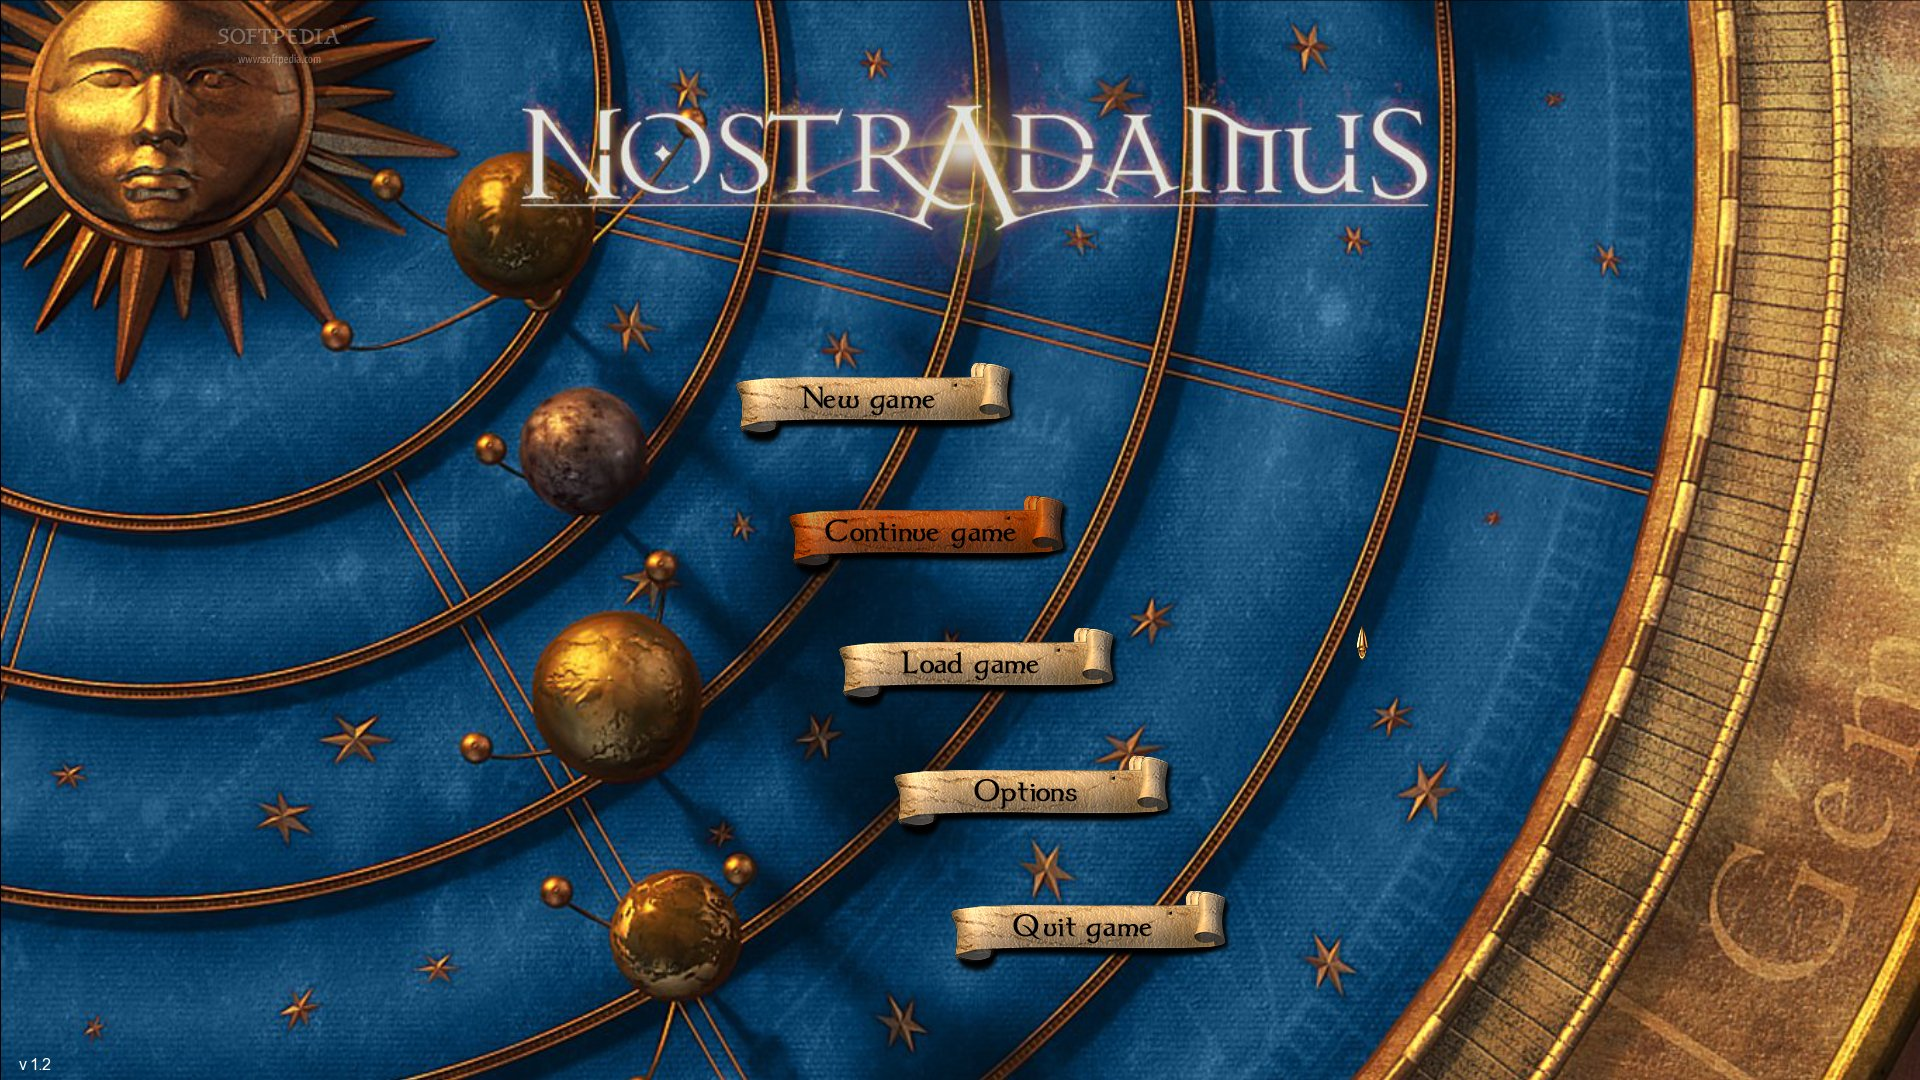 the predictions of nostradamus Nostradamus's other predictions have been similarly said to come true in major 20th century events, including the rise of adolf hitler, the founding of the united states and its eagle symbol, napoleon's impact on history, the french and russian revolutions, the world wars, and the creation of the atomic bomb.